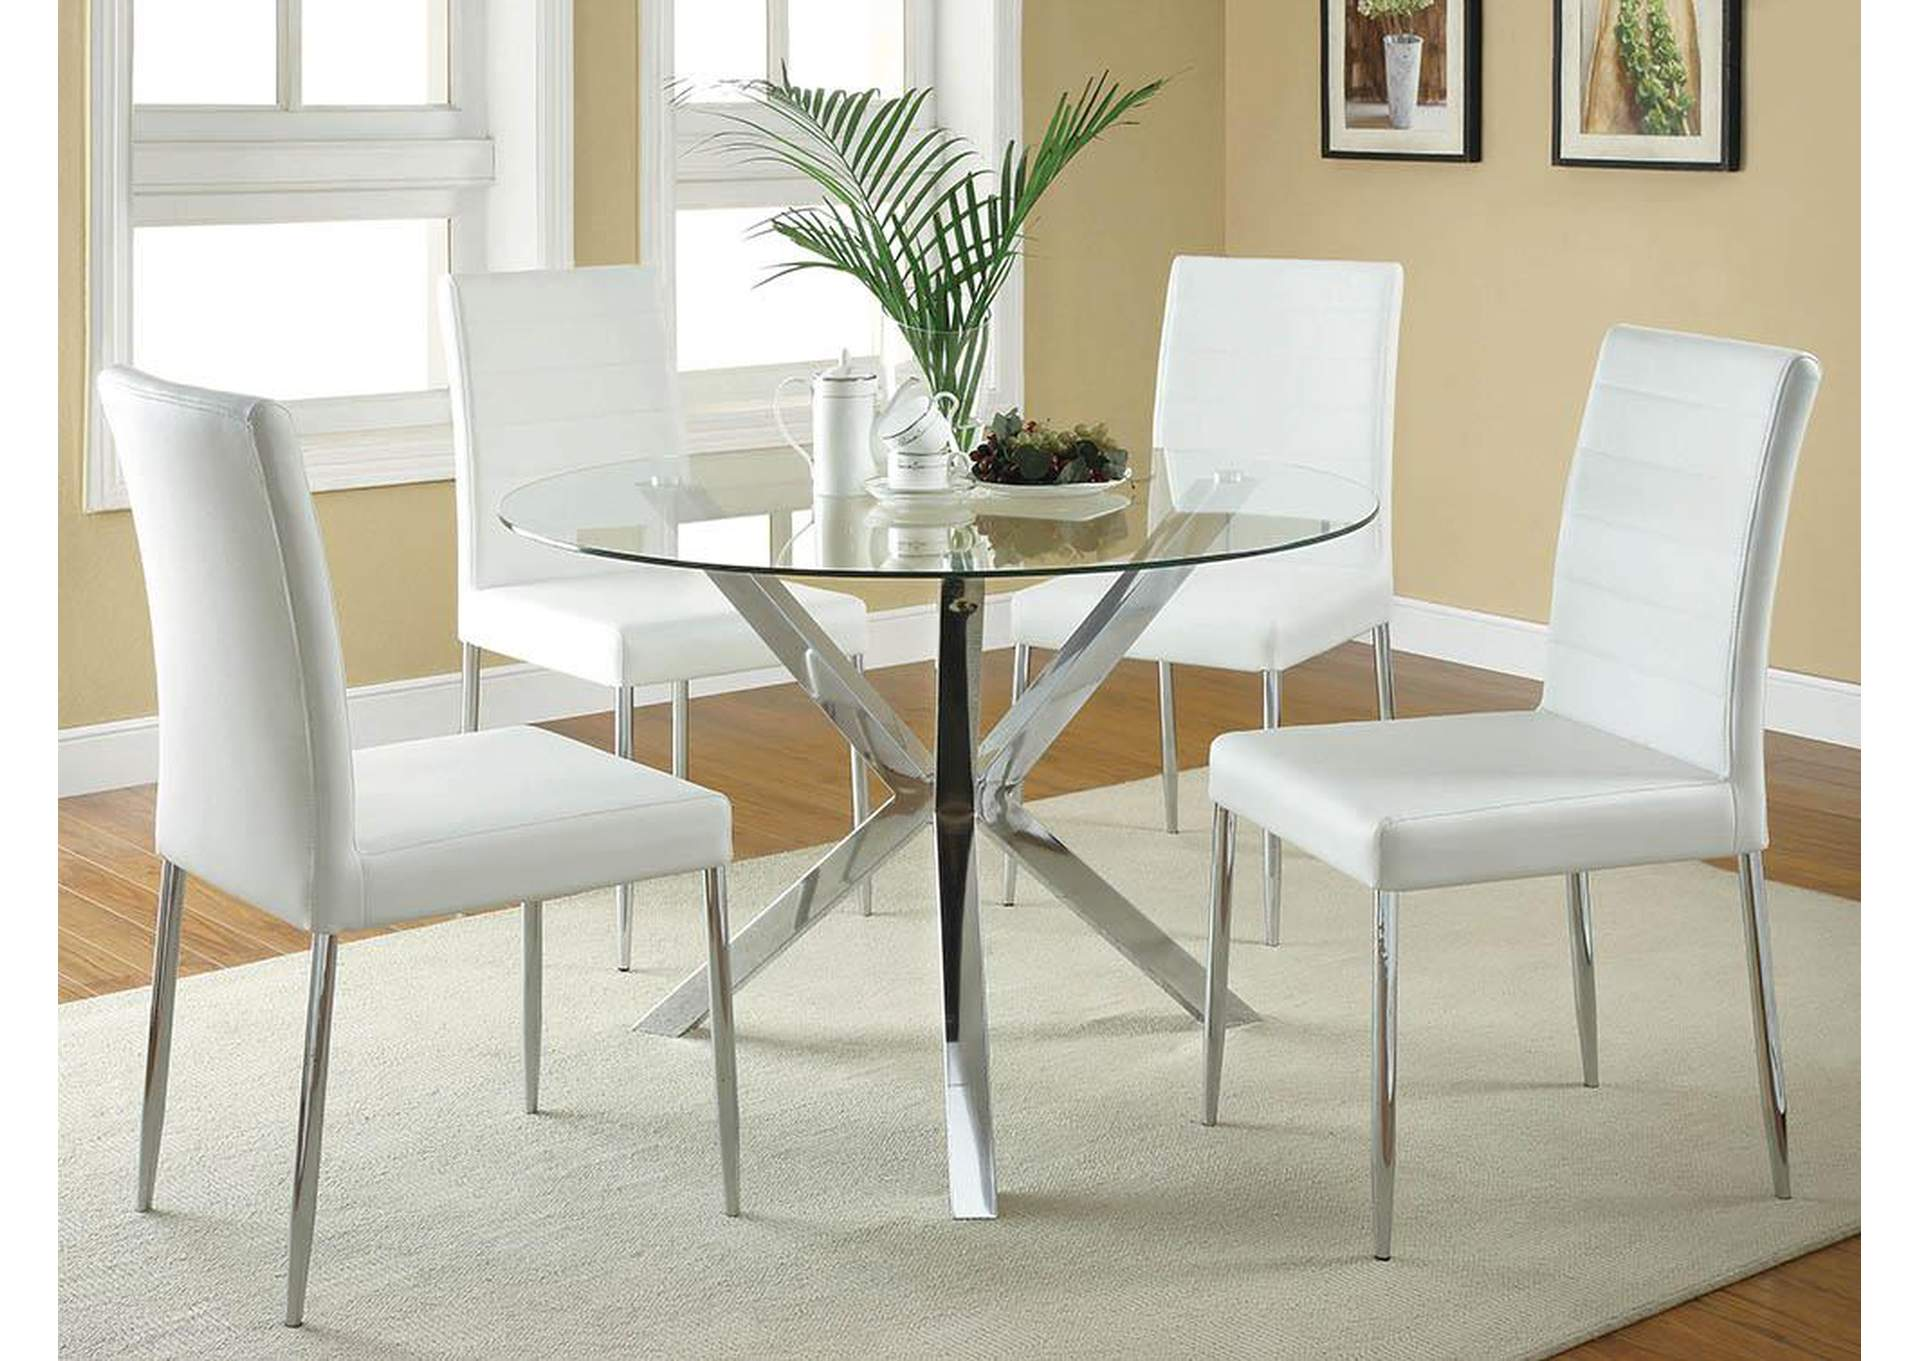 Vance Upholstered Dining Chairs White Set Of 4 Home Gallery Furniture Store Philadelphia Pa